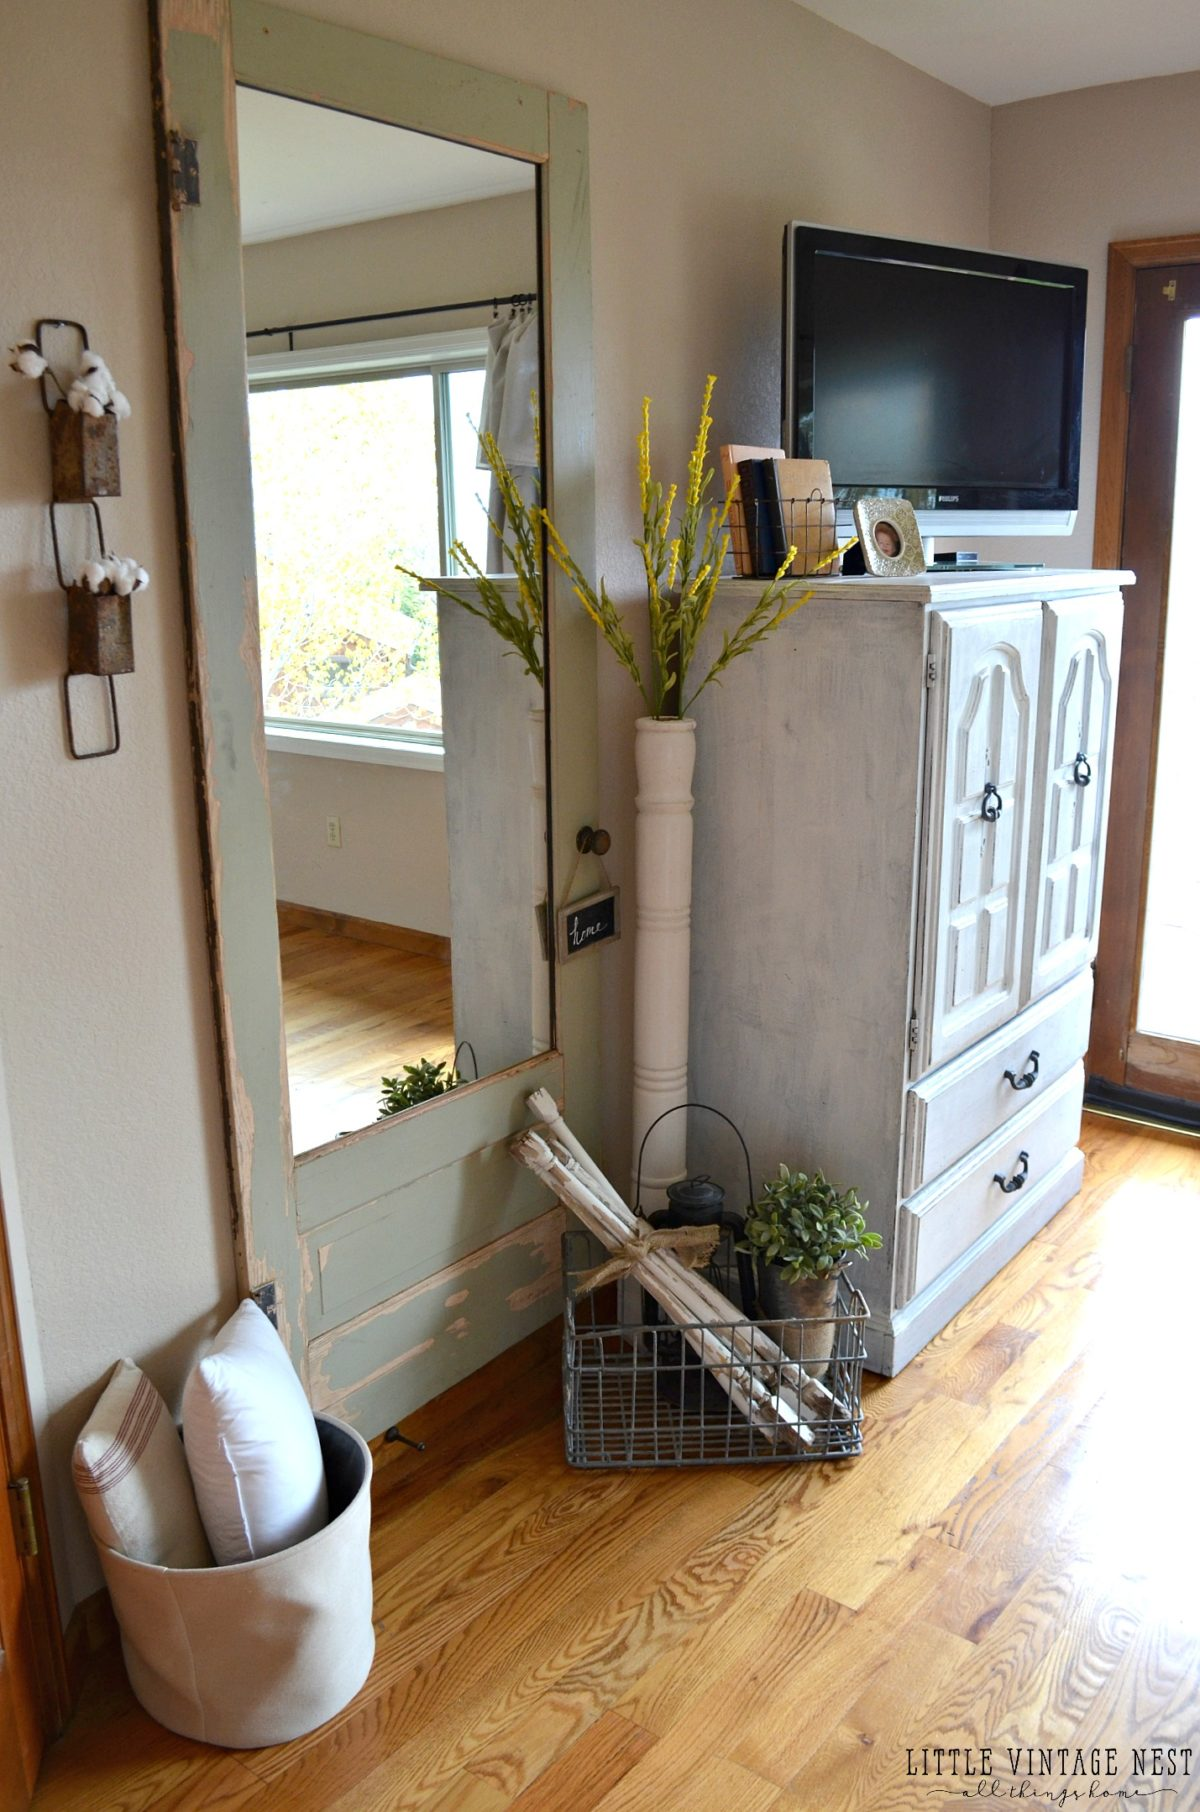 Marvelous Old Door Turned Into Full Length Wall Mirror DIY